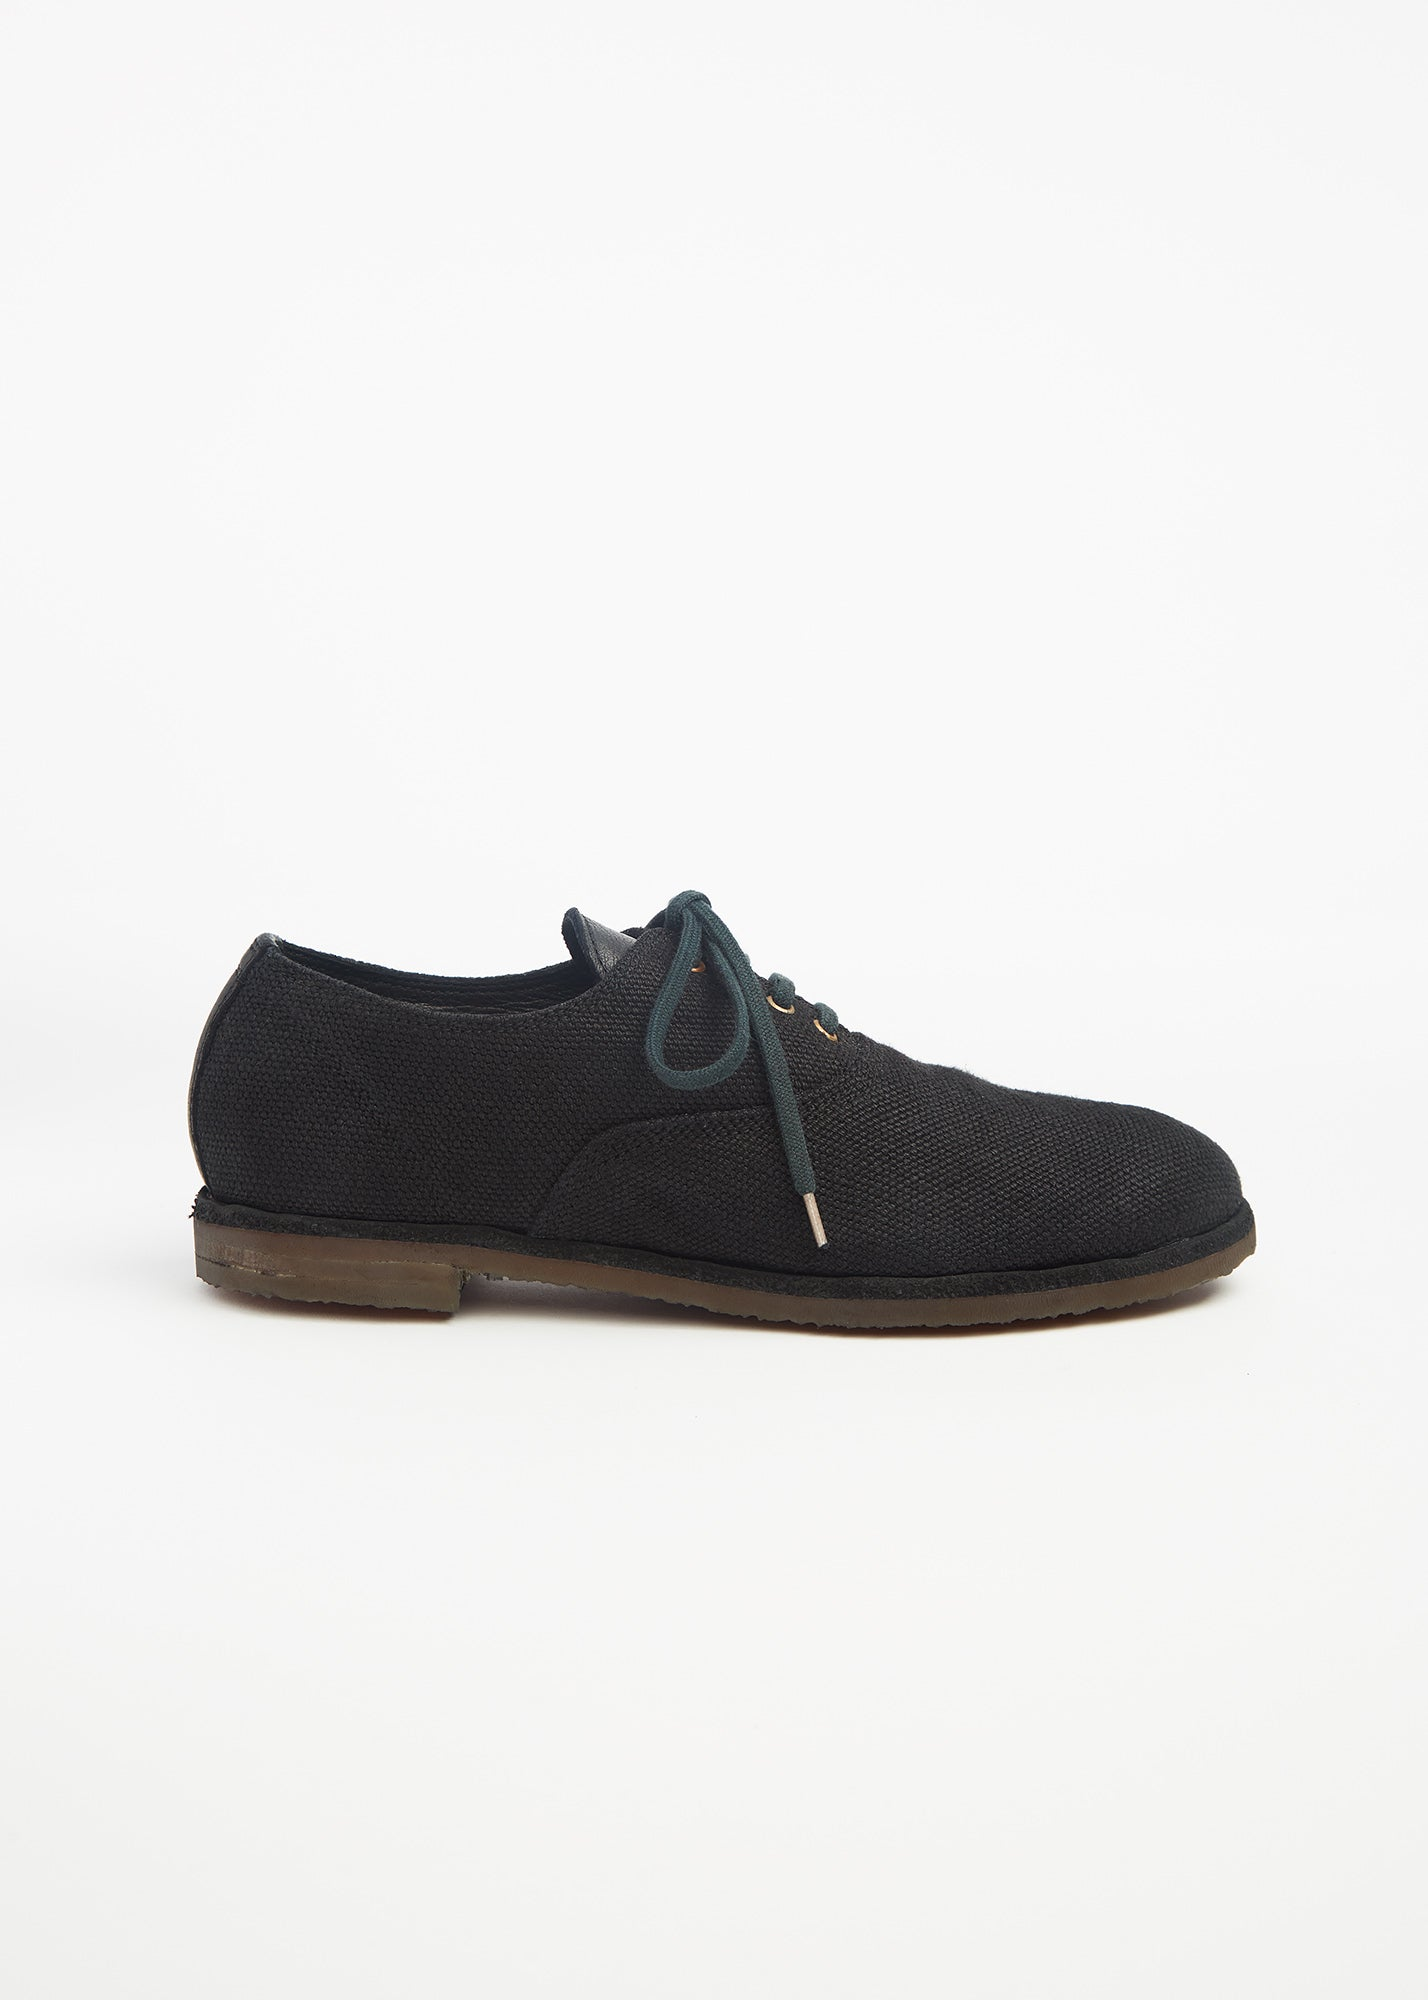 Army Lace Up Shoe Black